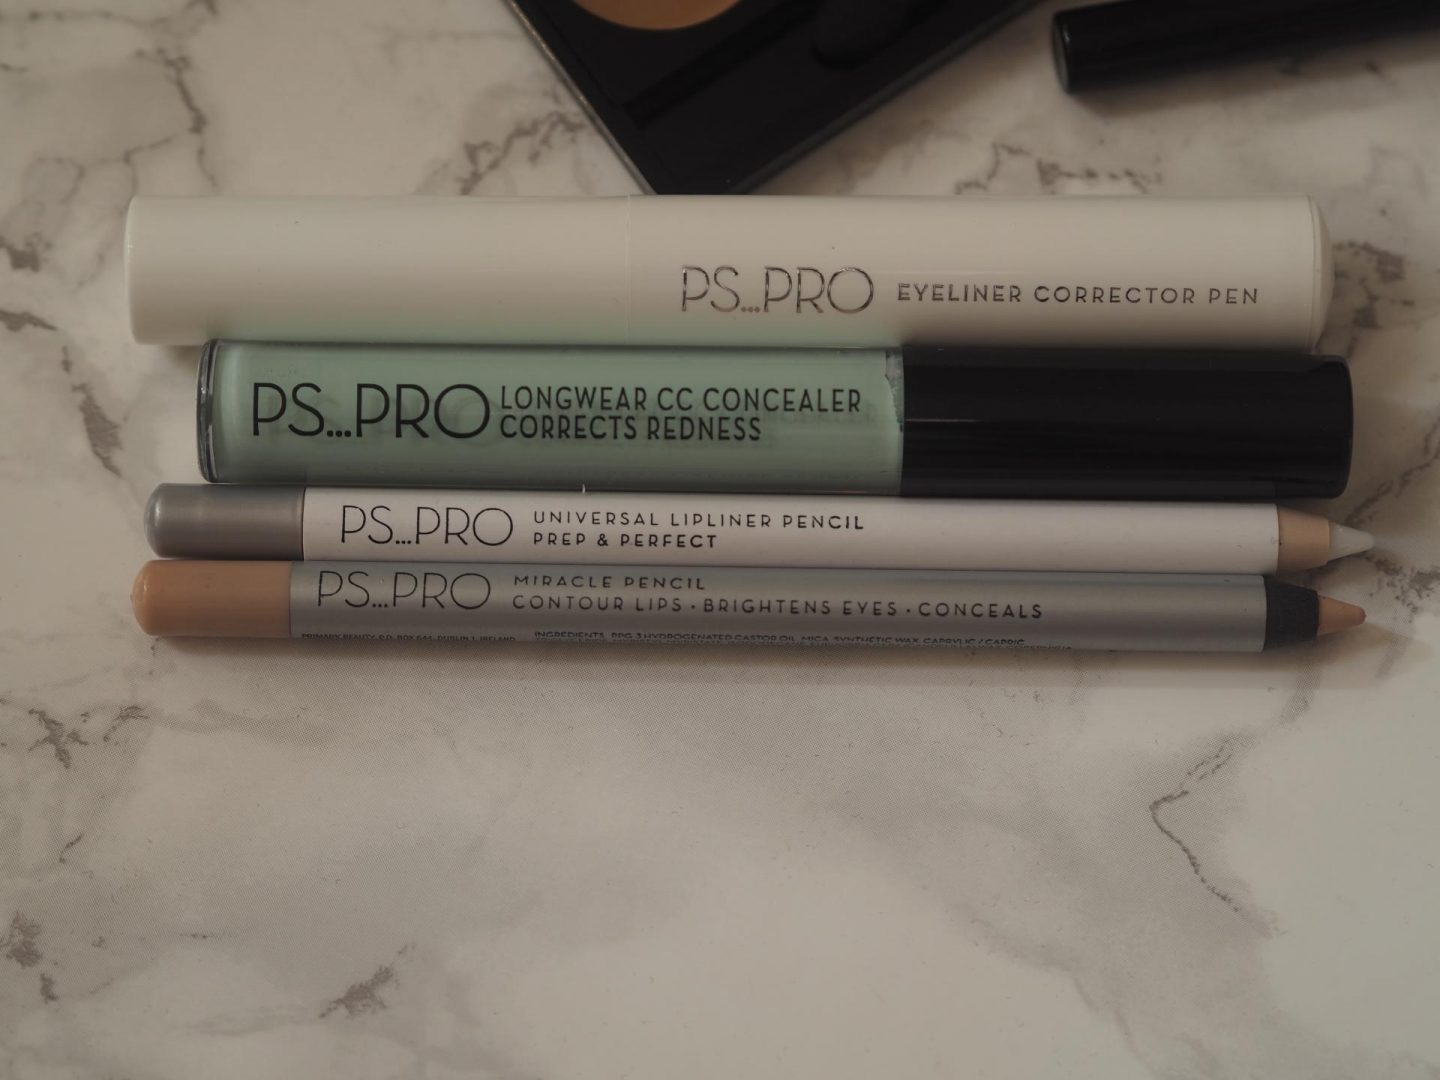 Primark PS Pro - Products: Eyeliner Correction Pen, Longwear CC Concealer Corrects Redness, Universal Liplined Pencil & Miracle Pencil